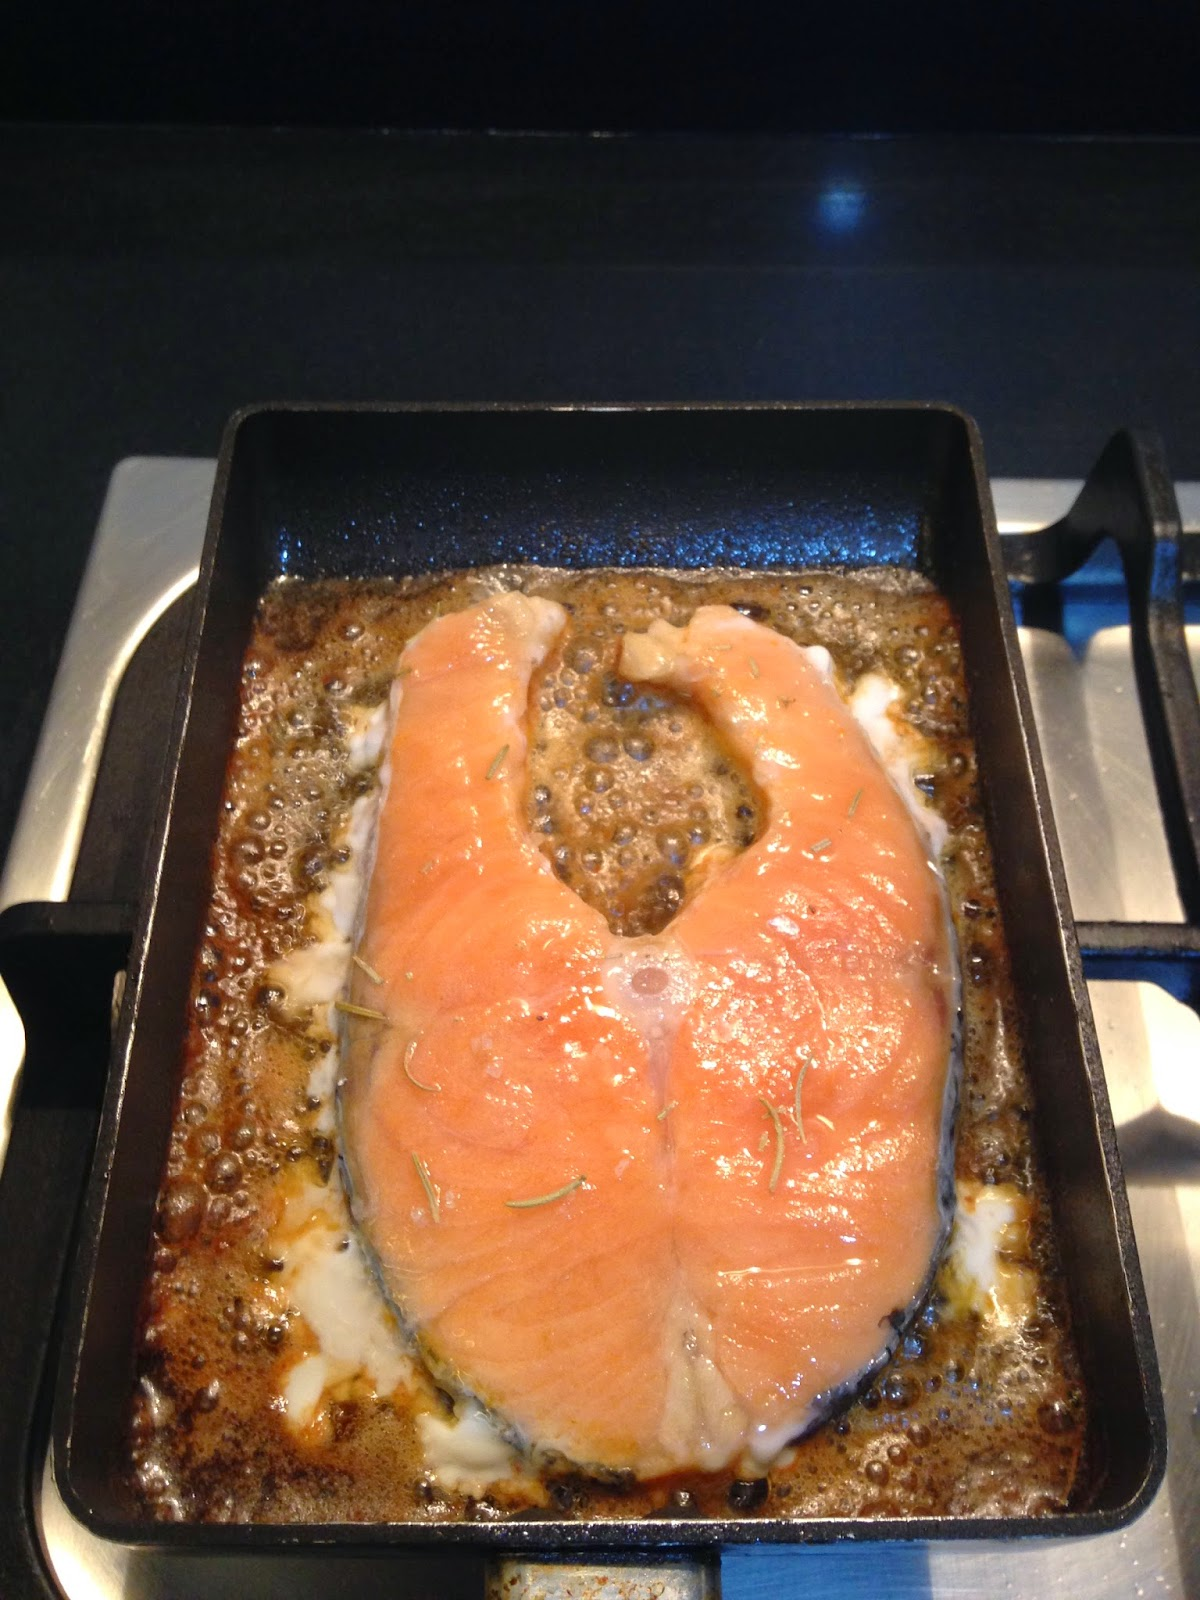 Cooking ng ina mo rin the philippines 1 food blog norwegian norwegian salmon and blue marlin recipe forumfinder Gallery